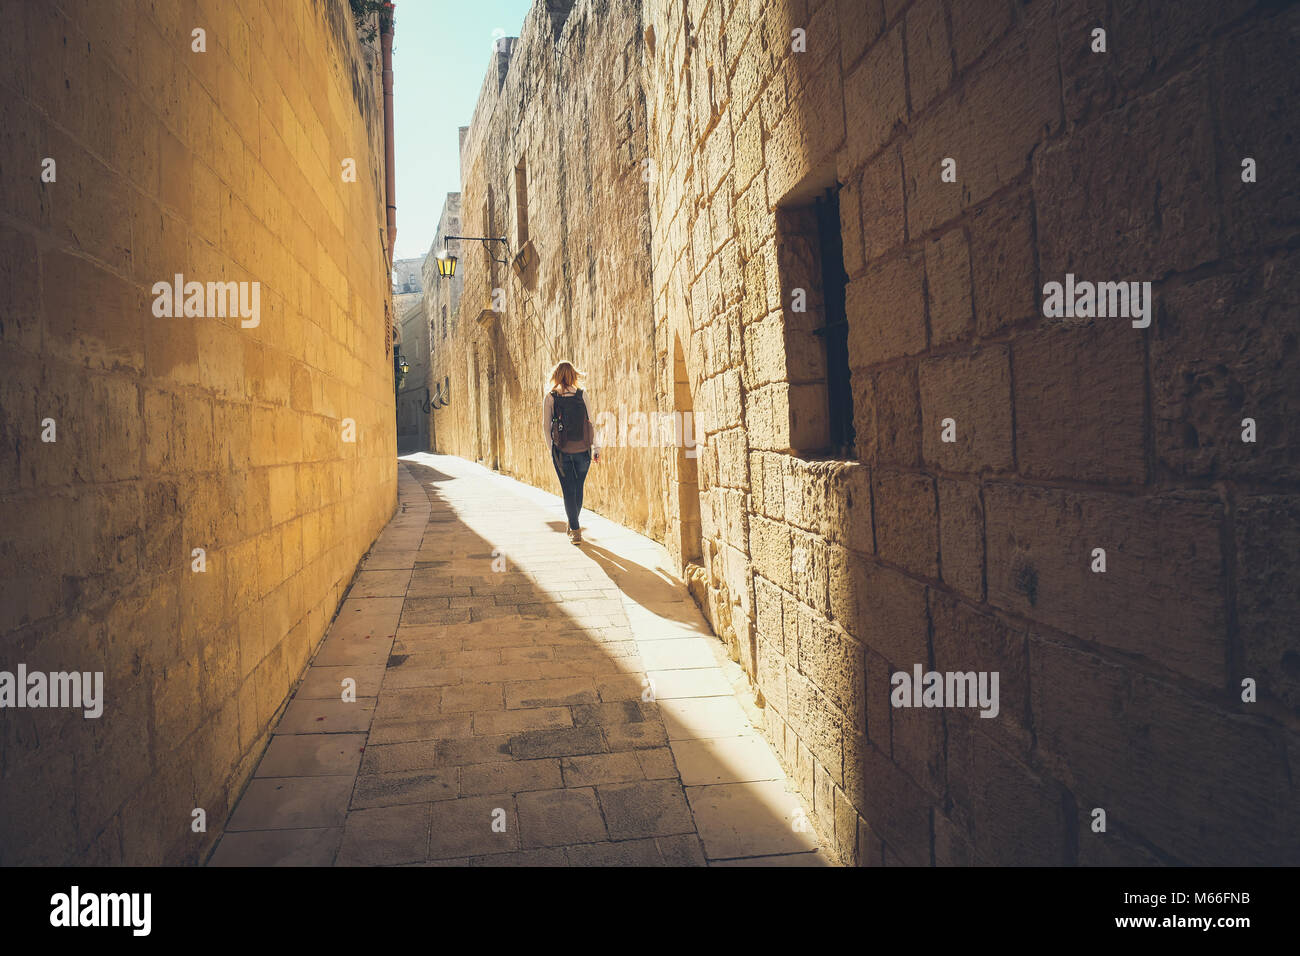 Narrow streets of the old Mdina. Tourist walking. Typical architecture in Malta - Stock Image